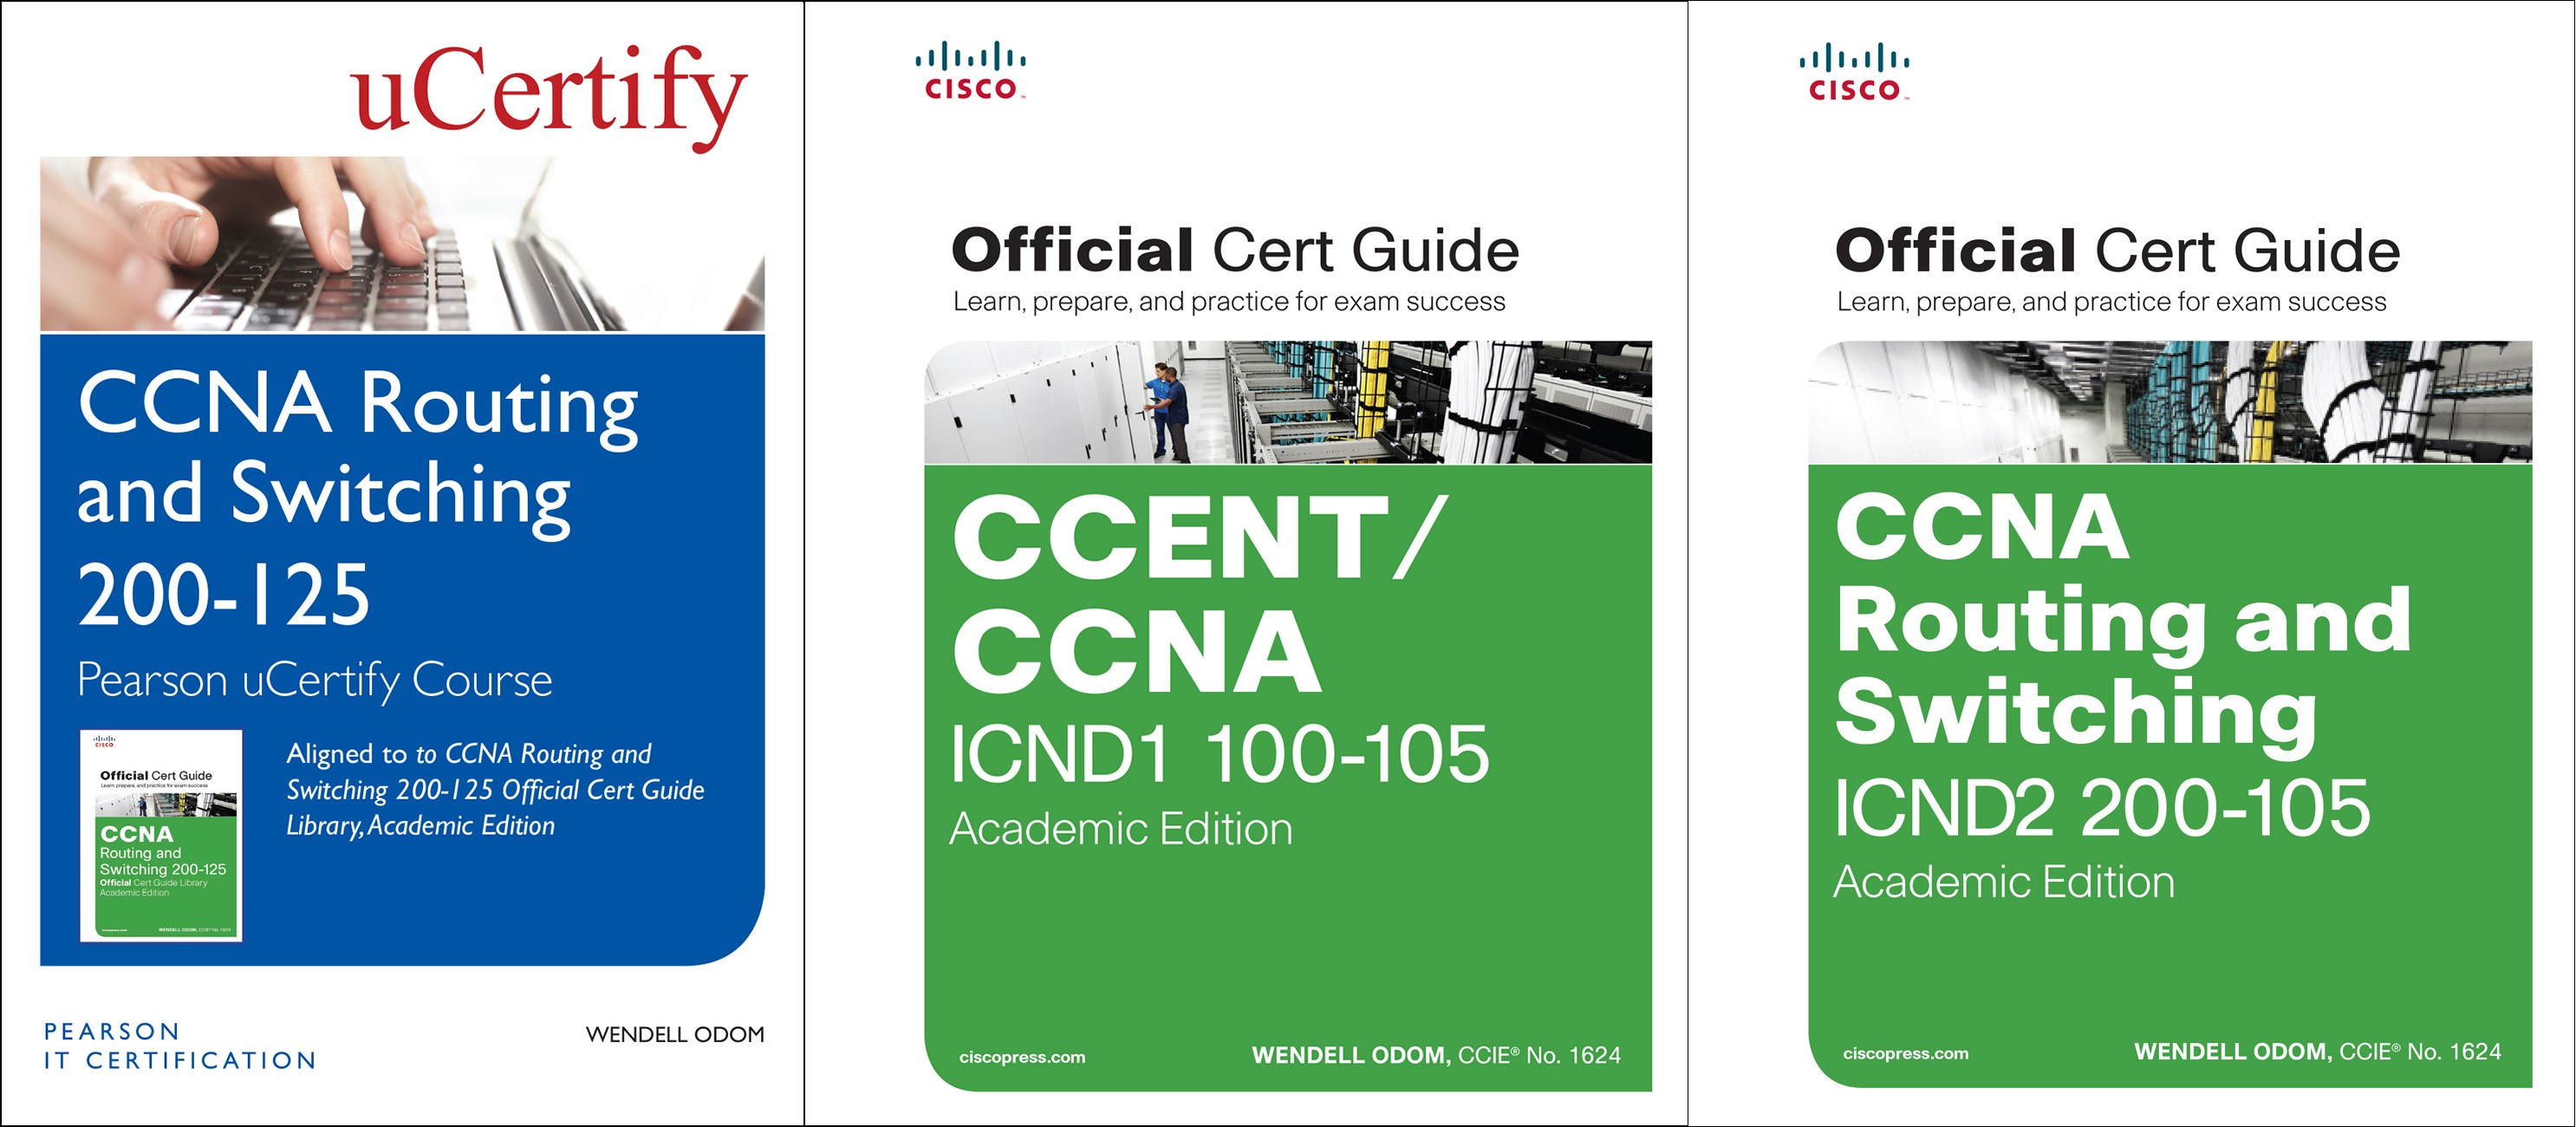 CCNA Routing and Switching 200-125 Pearson uCertify Course and